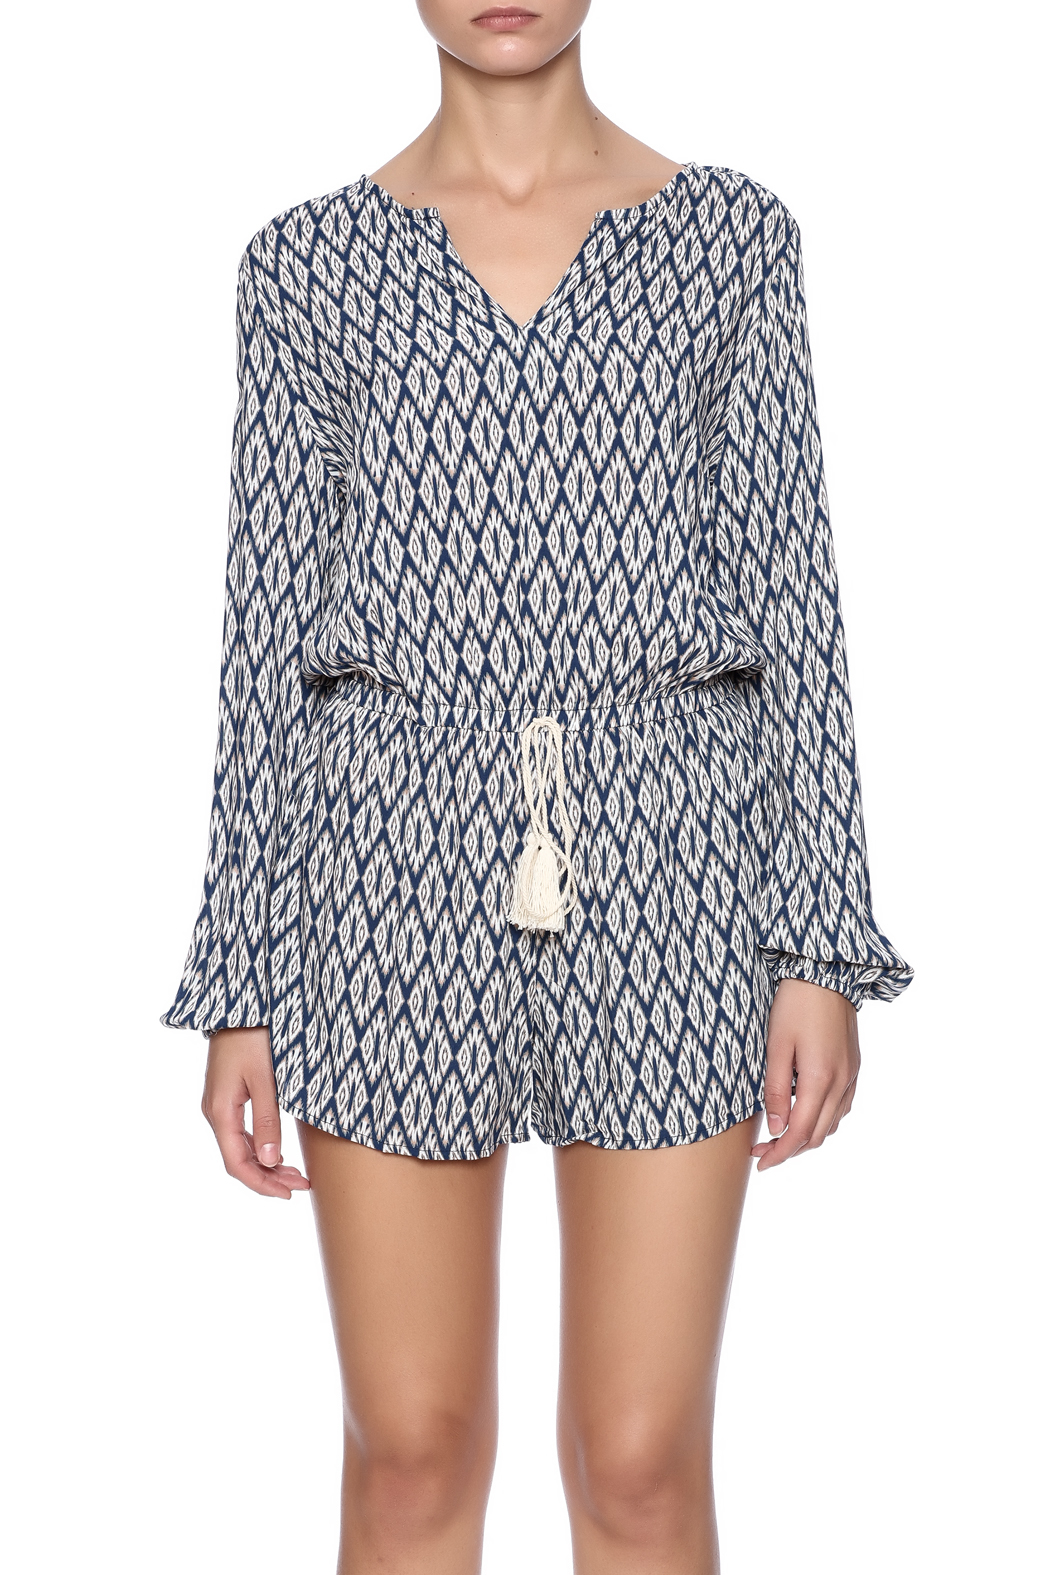 Kori The Taylor Romper - Side Cropped Image